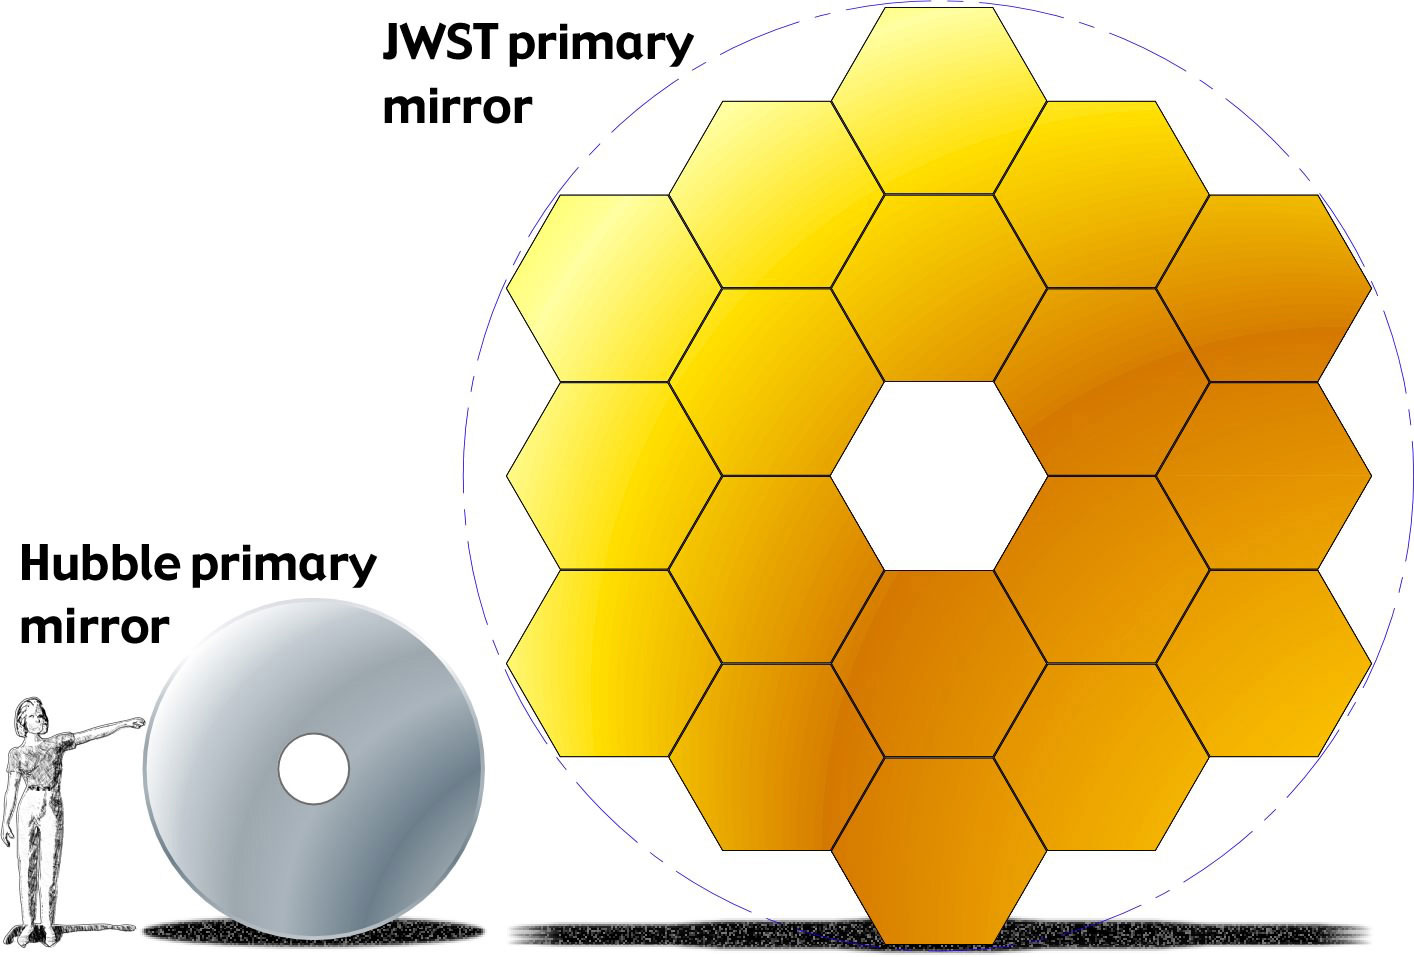 NASA Hubble Space Telescope Primary Mirror compared to the James Webb Space Telescope mirror panels assembly (138,775 bytes)